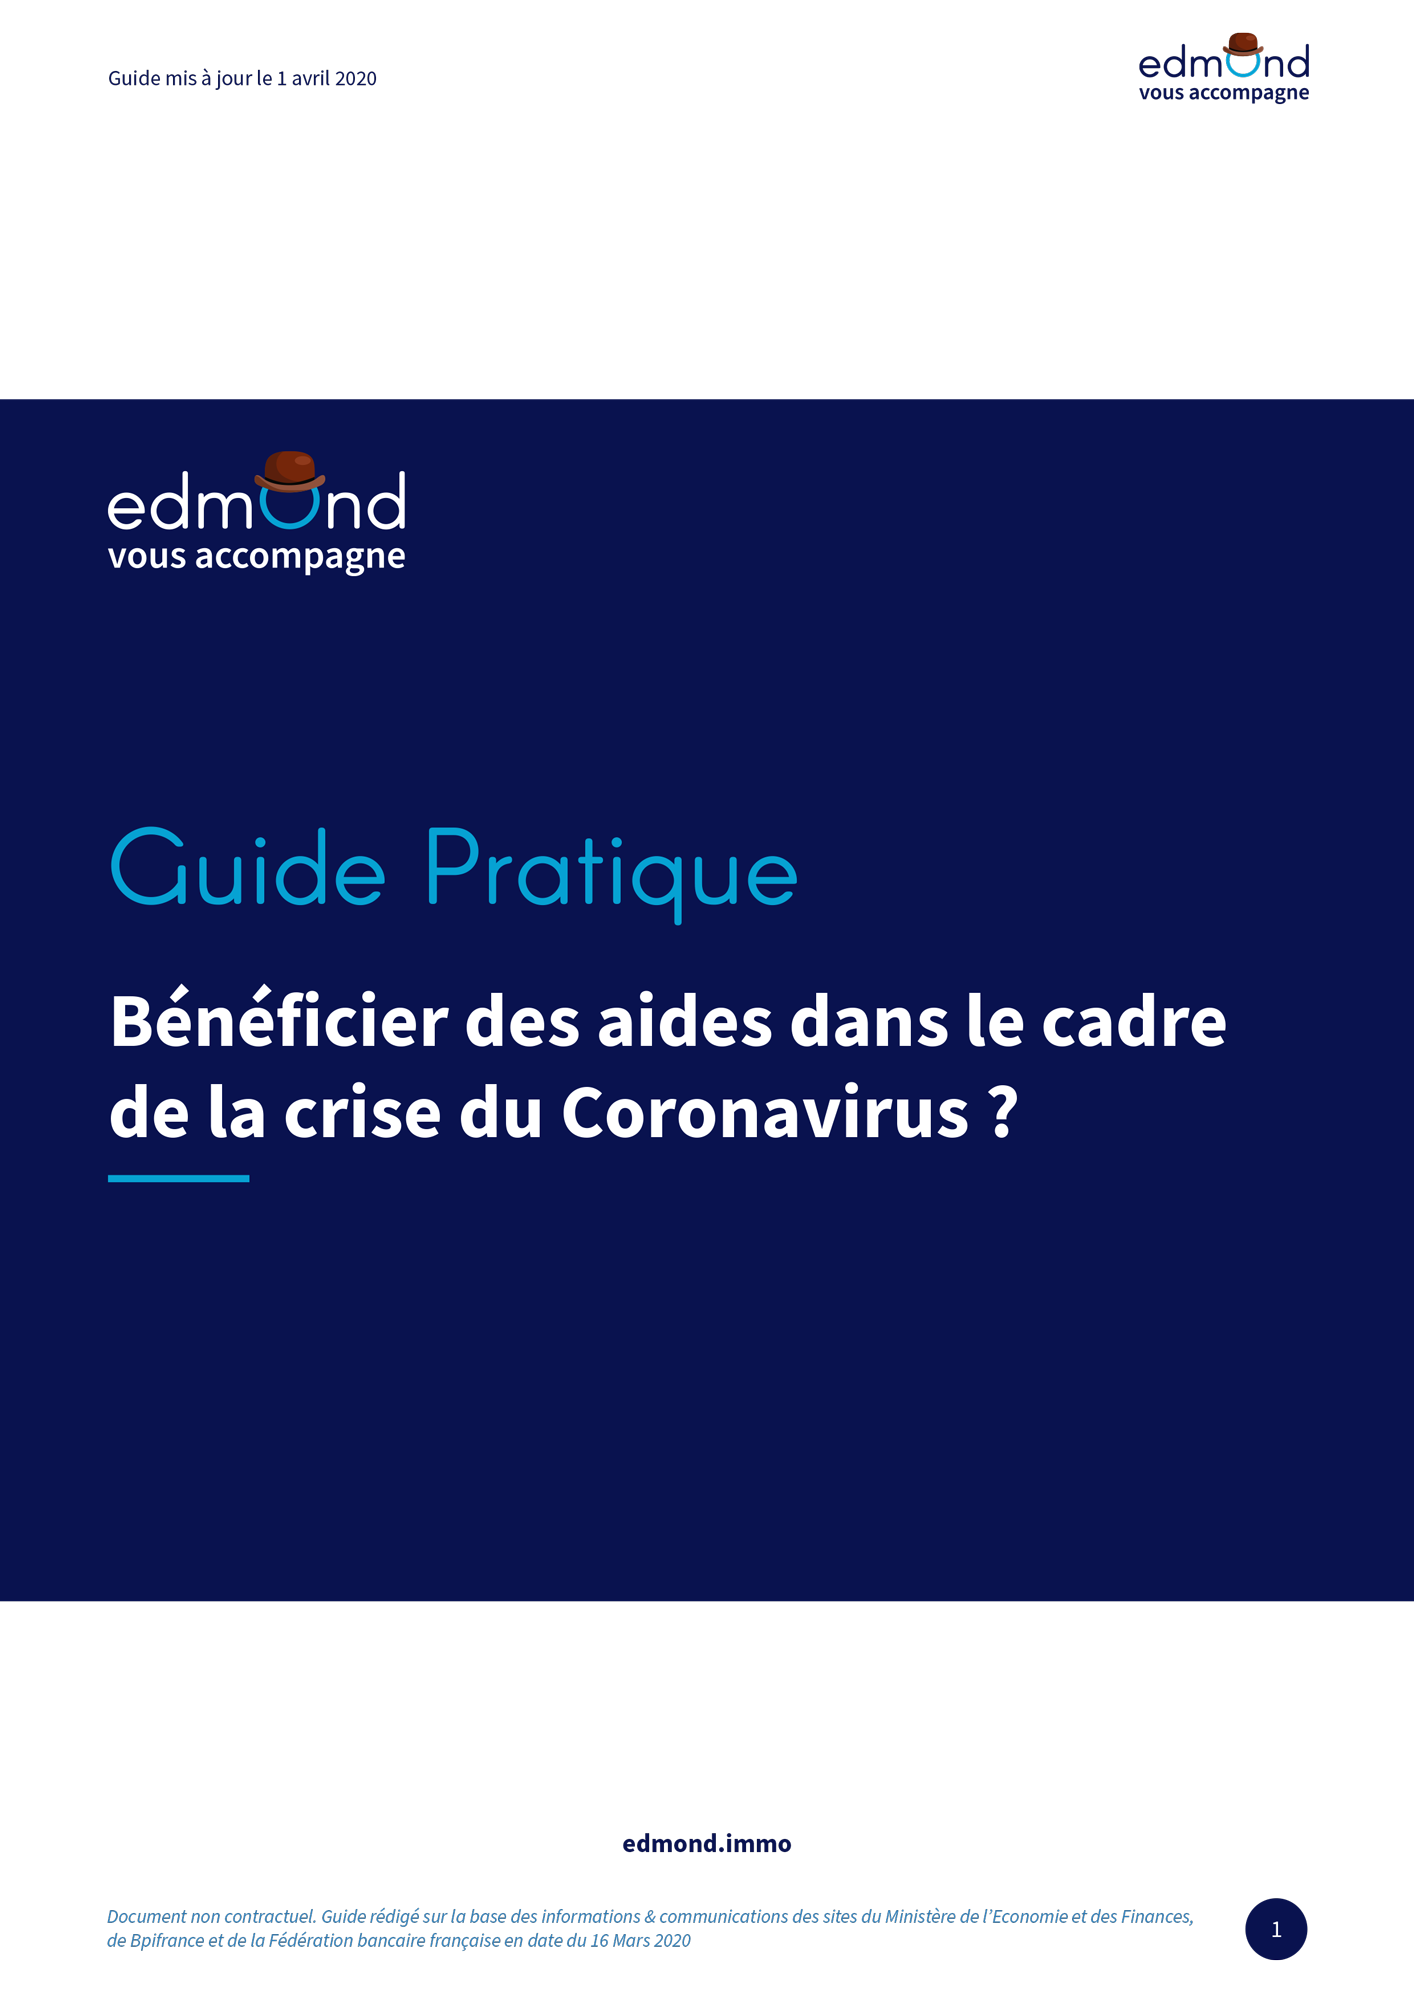 Guide des aides Edmond